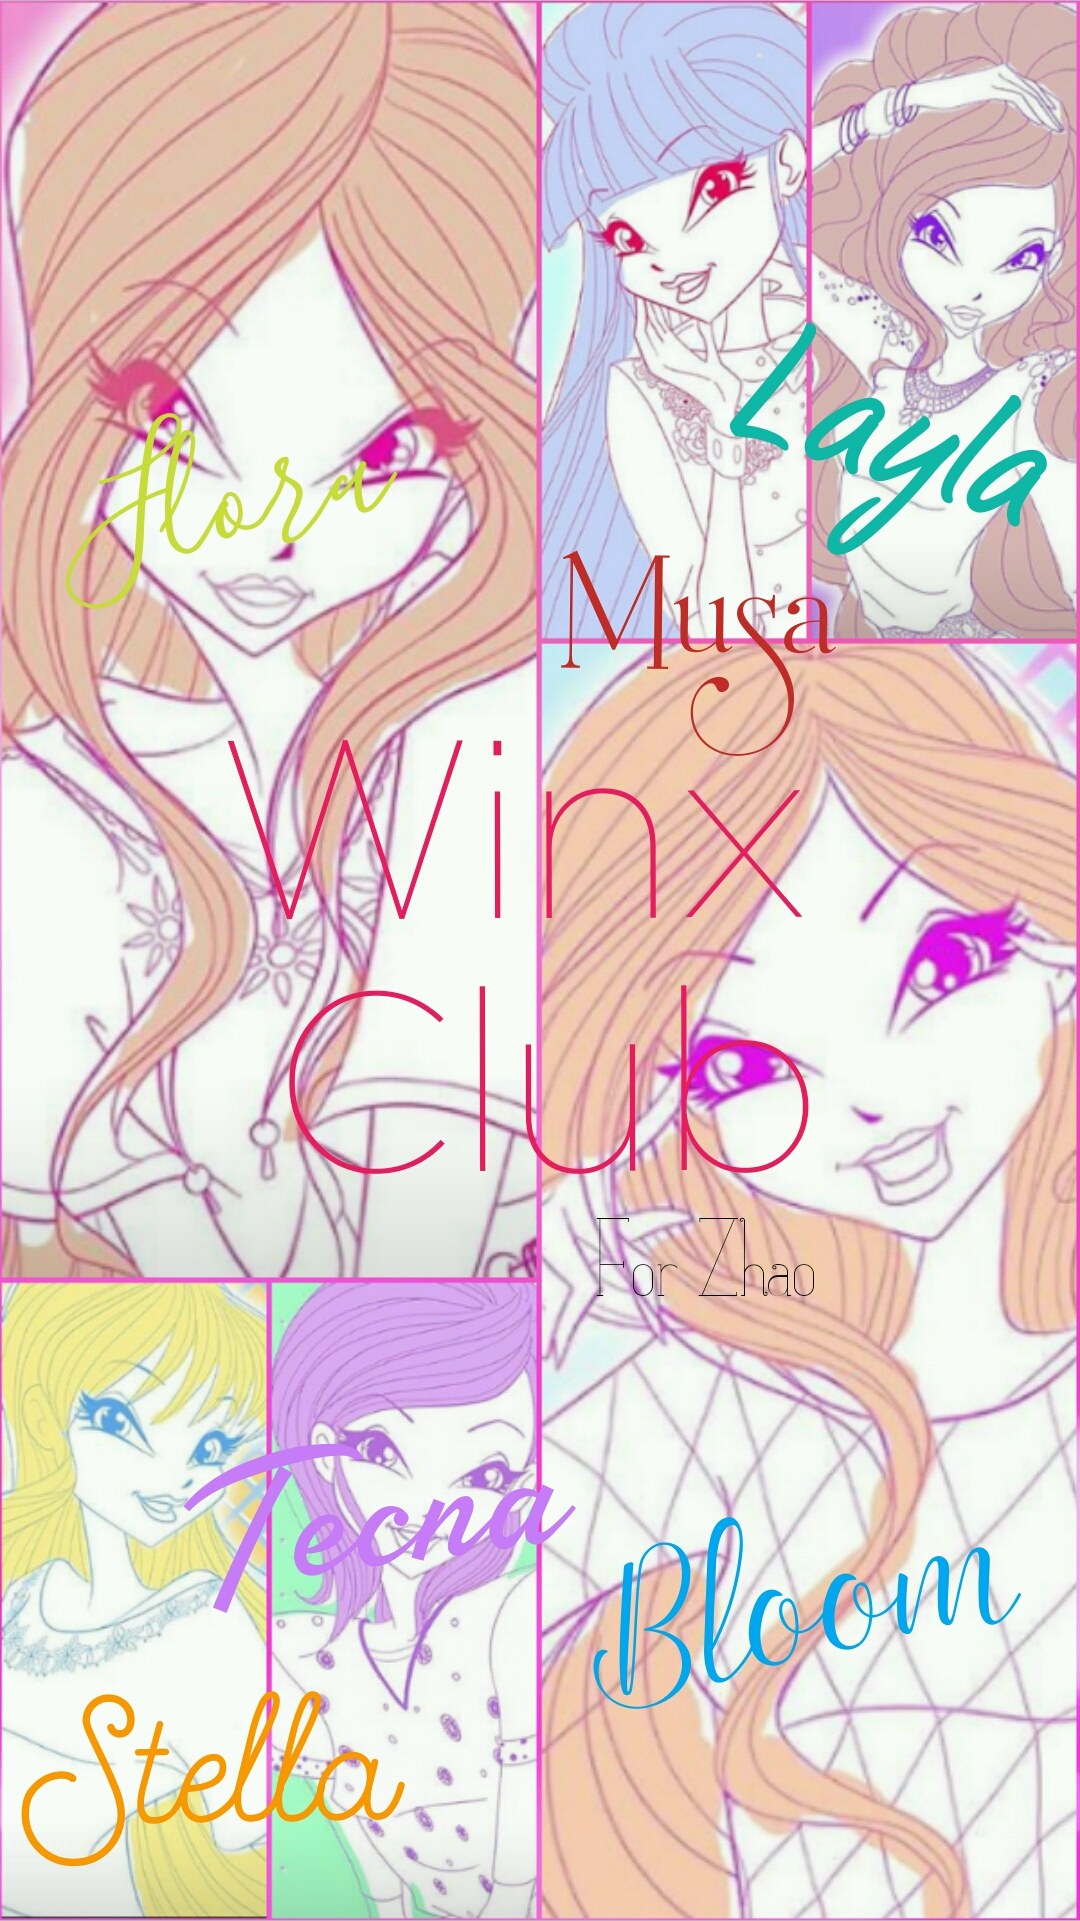 Hi! Here is one of my creations. It's an autograph of the Winx. What do you think?